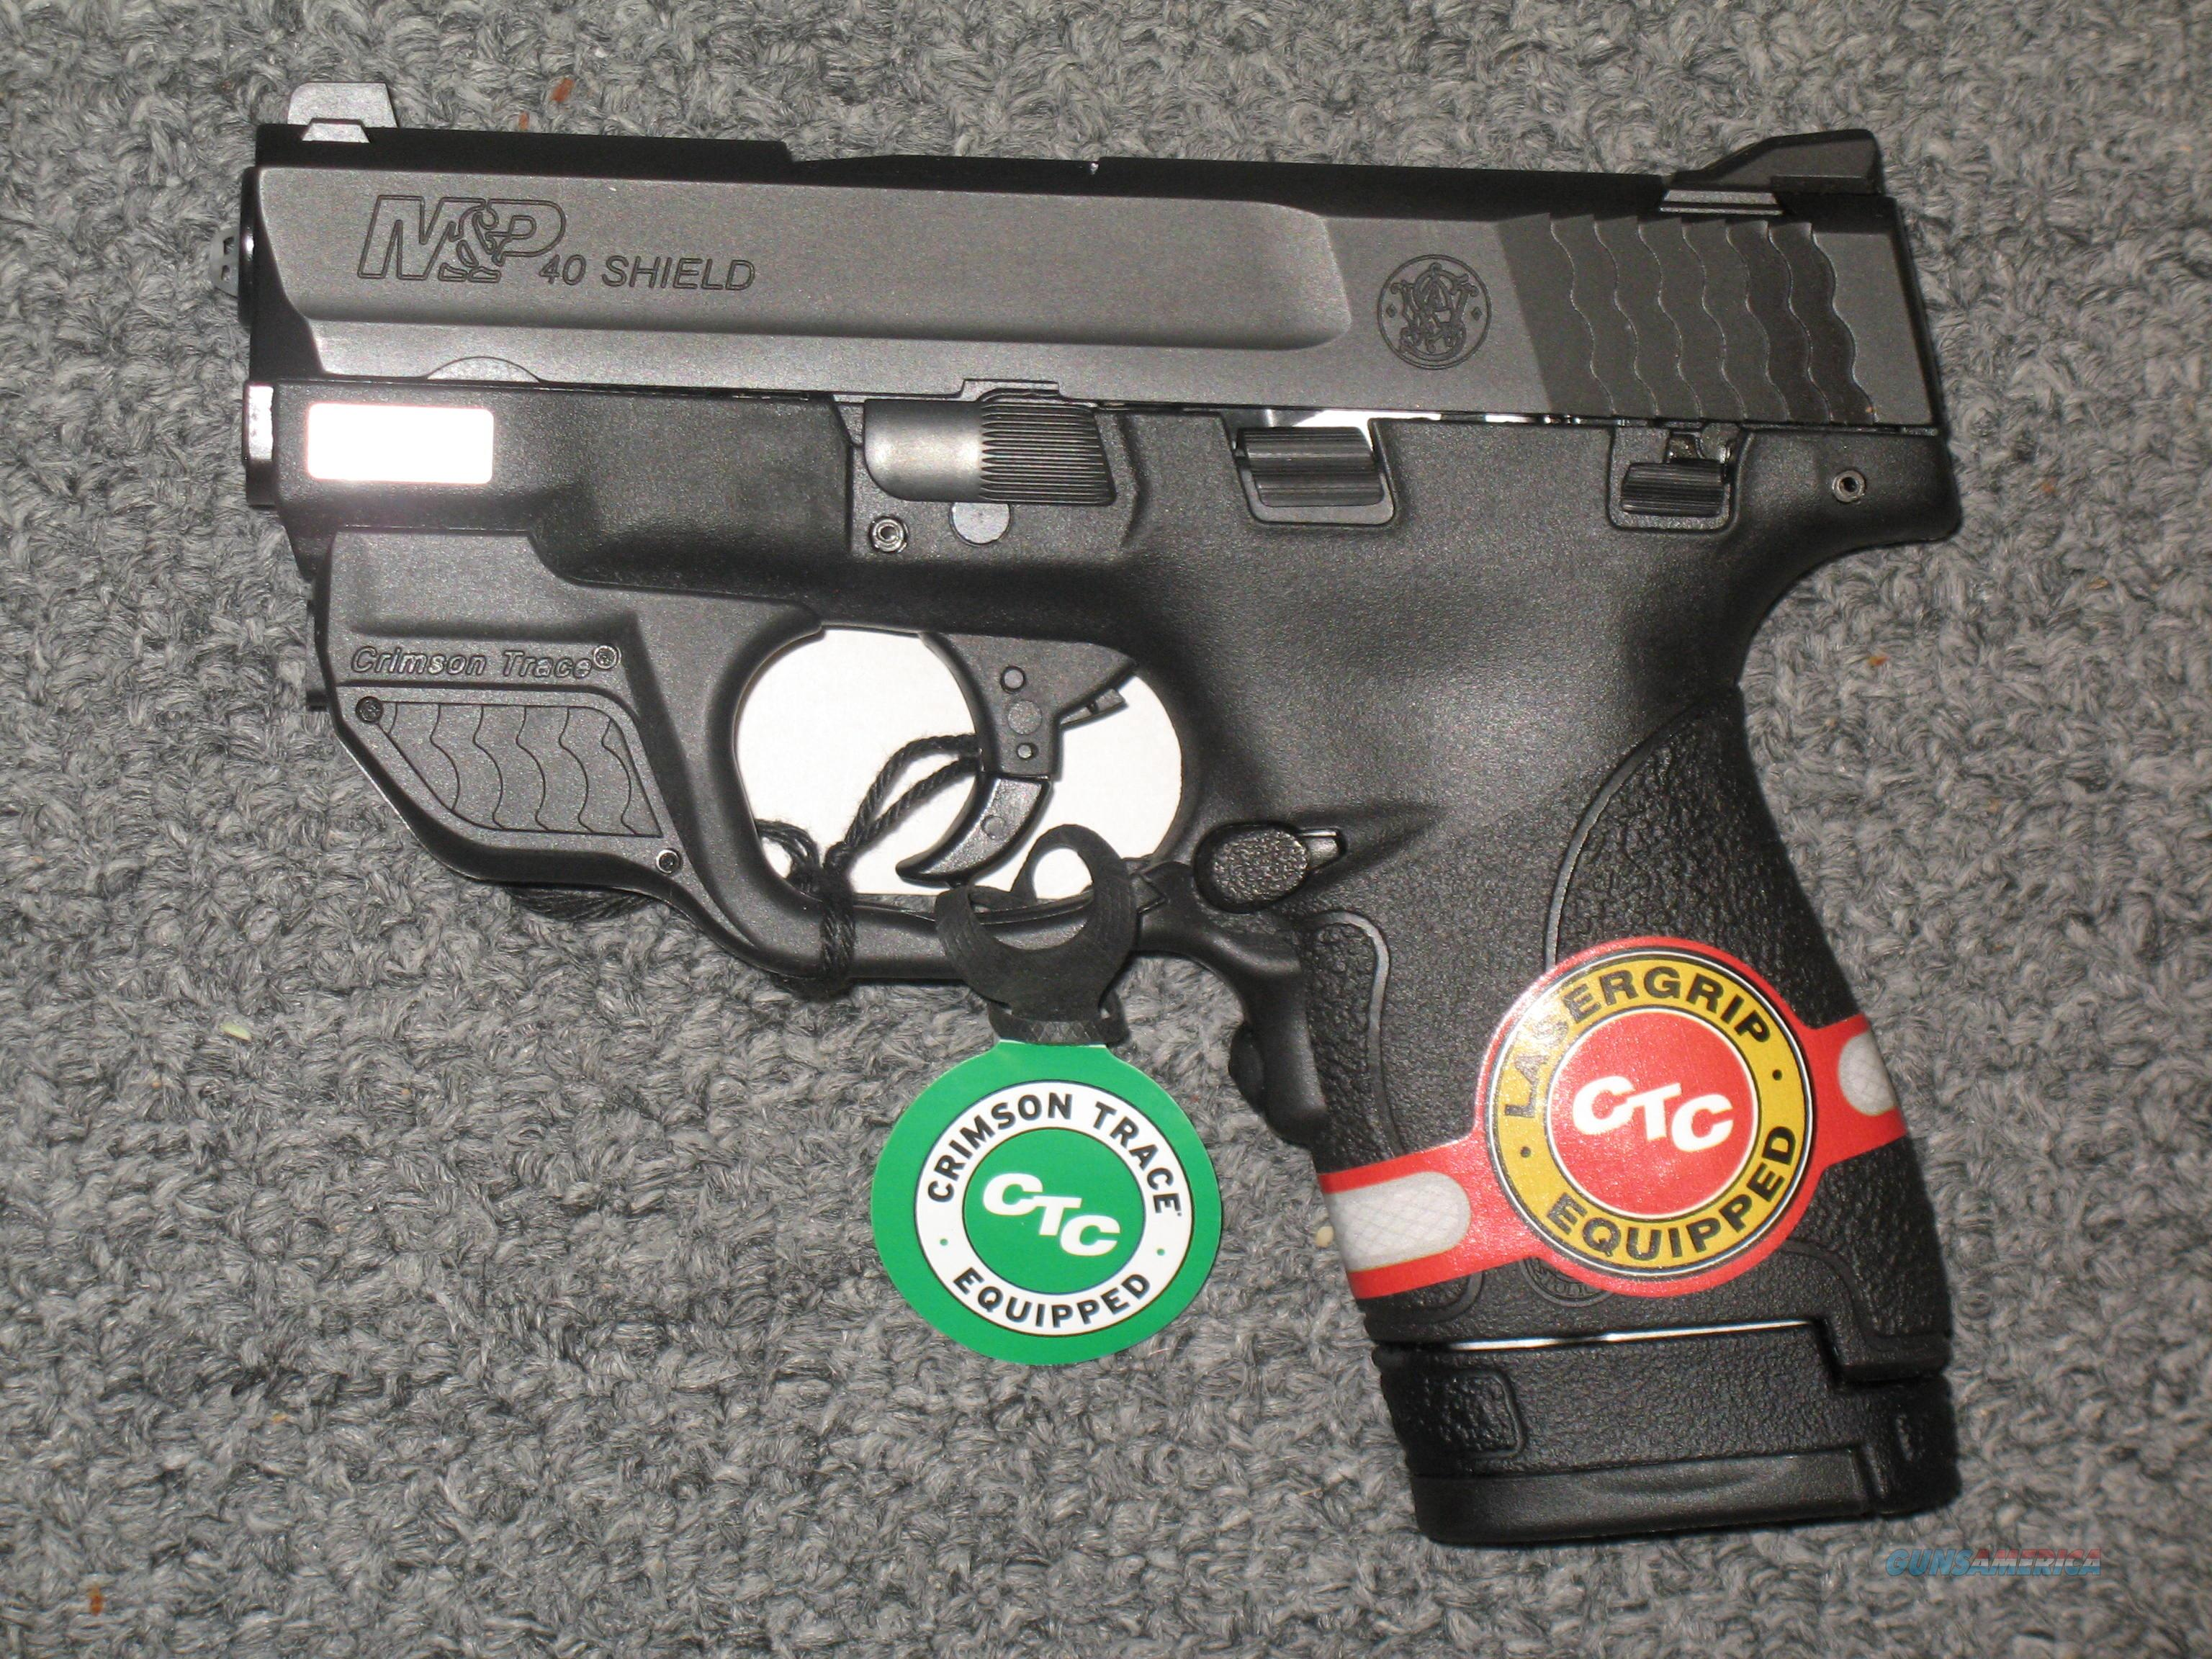 Smith & Wesson M&P40 Shield (with green Crimson Trace laser)  Guns > Pistols > Smith & Wesson Pistols - Autos > Shield